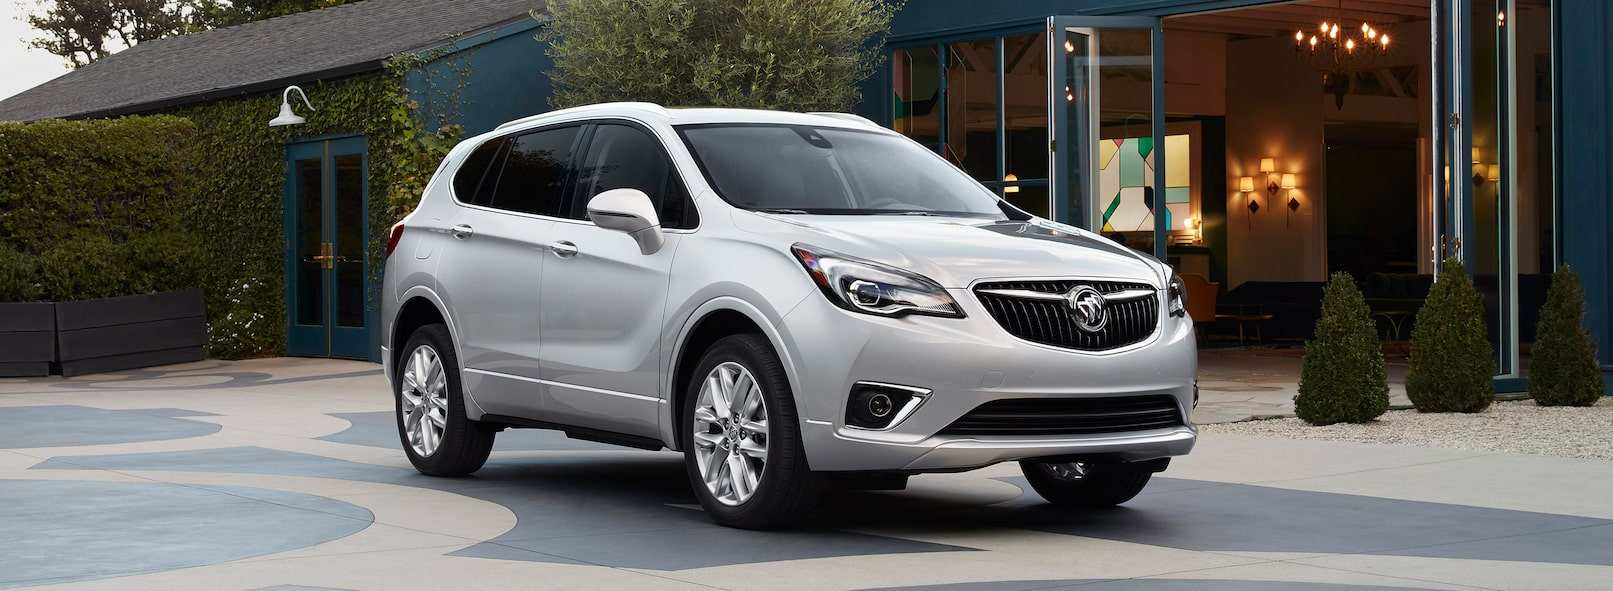 40 Best Review Buick Envision 2019 Colors Price Review for Buick Envision 2019 Colors Price